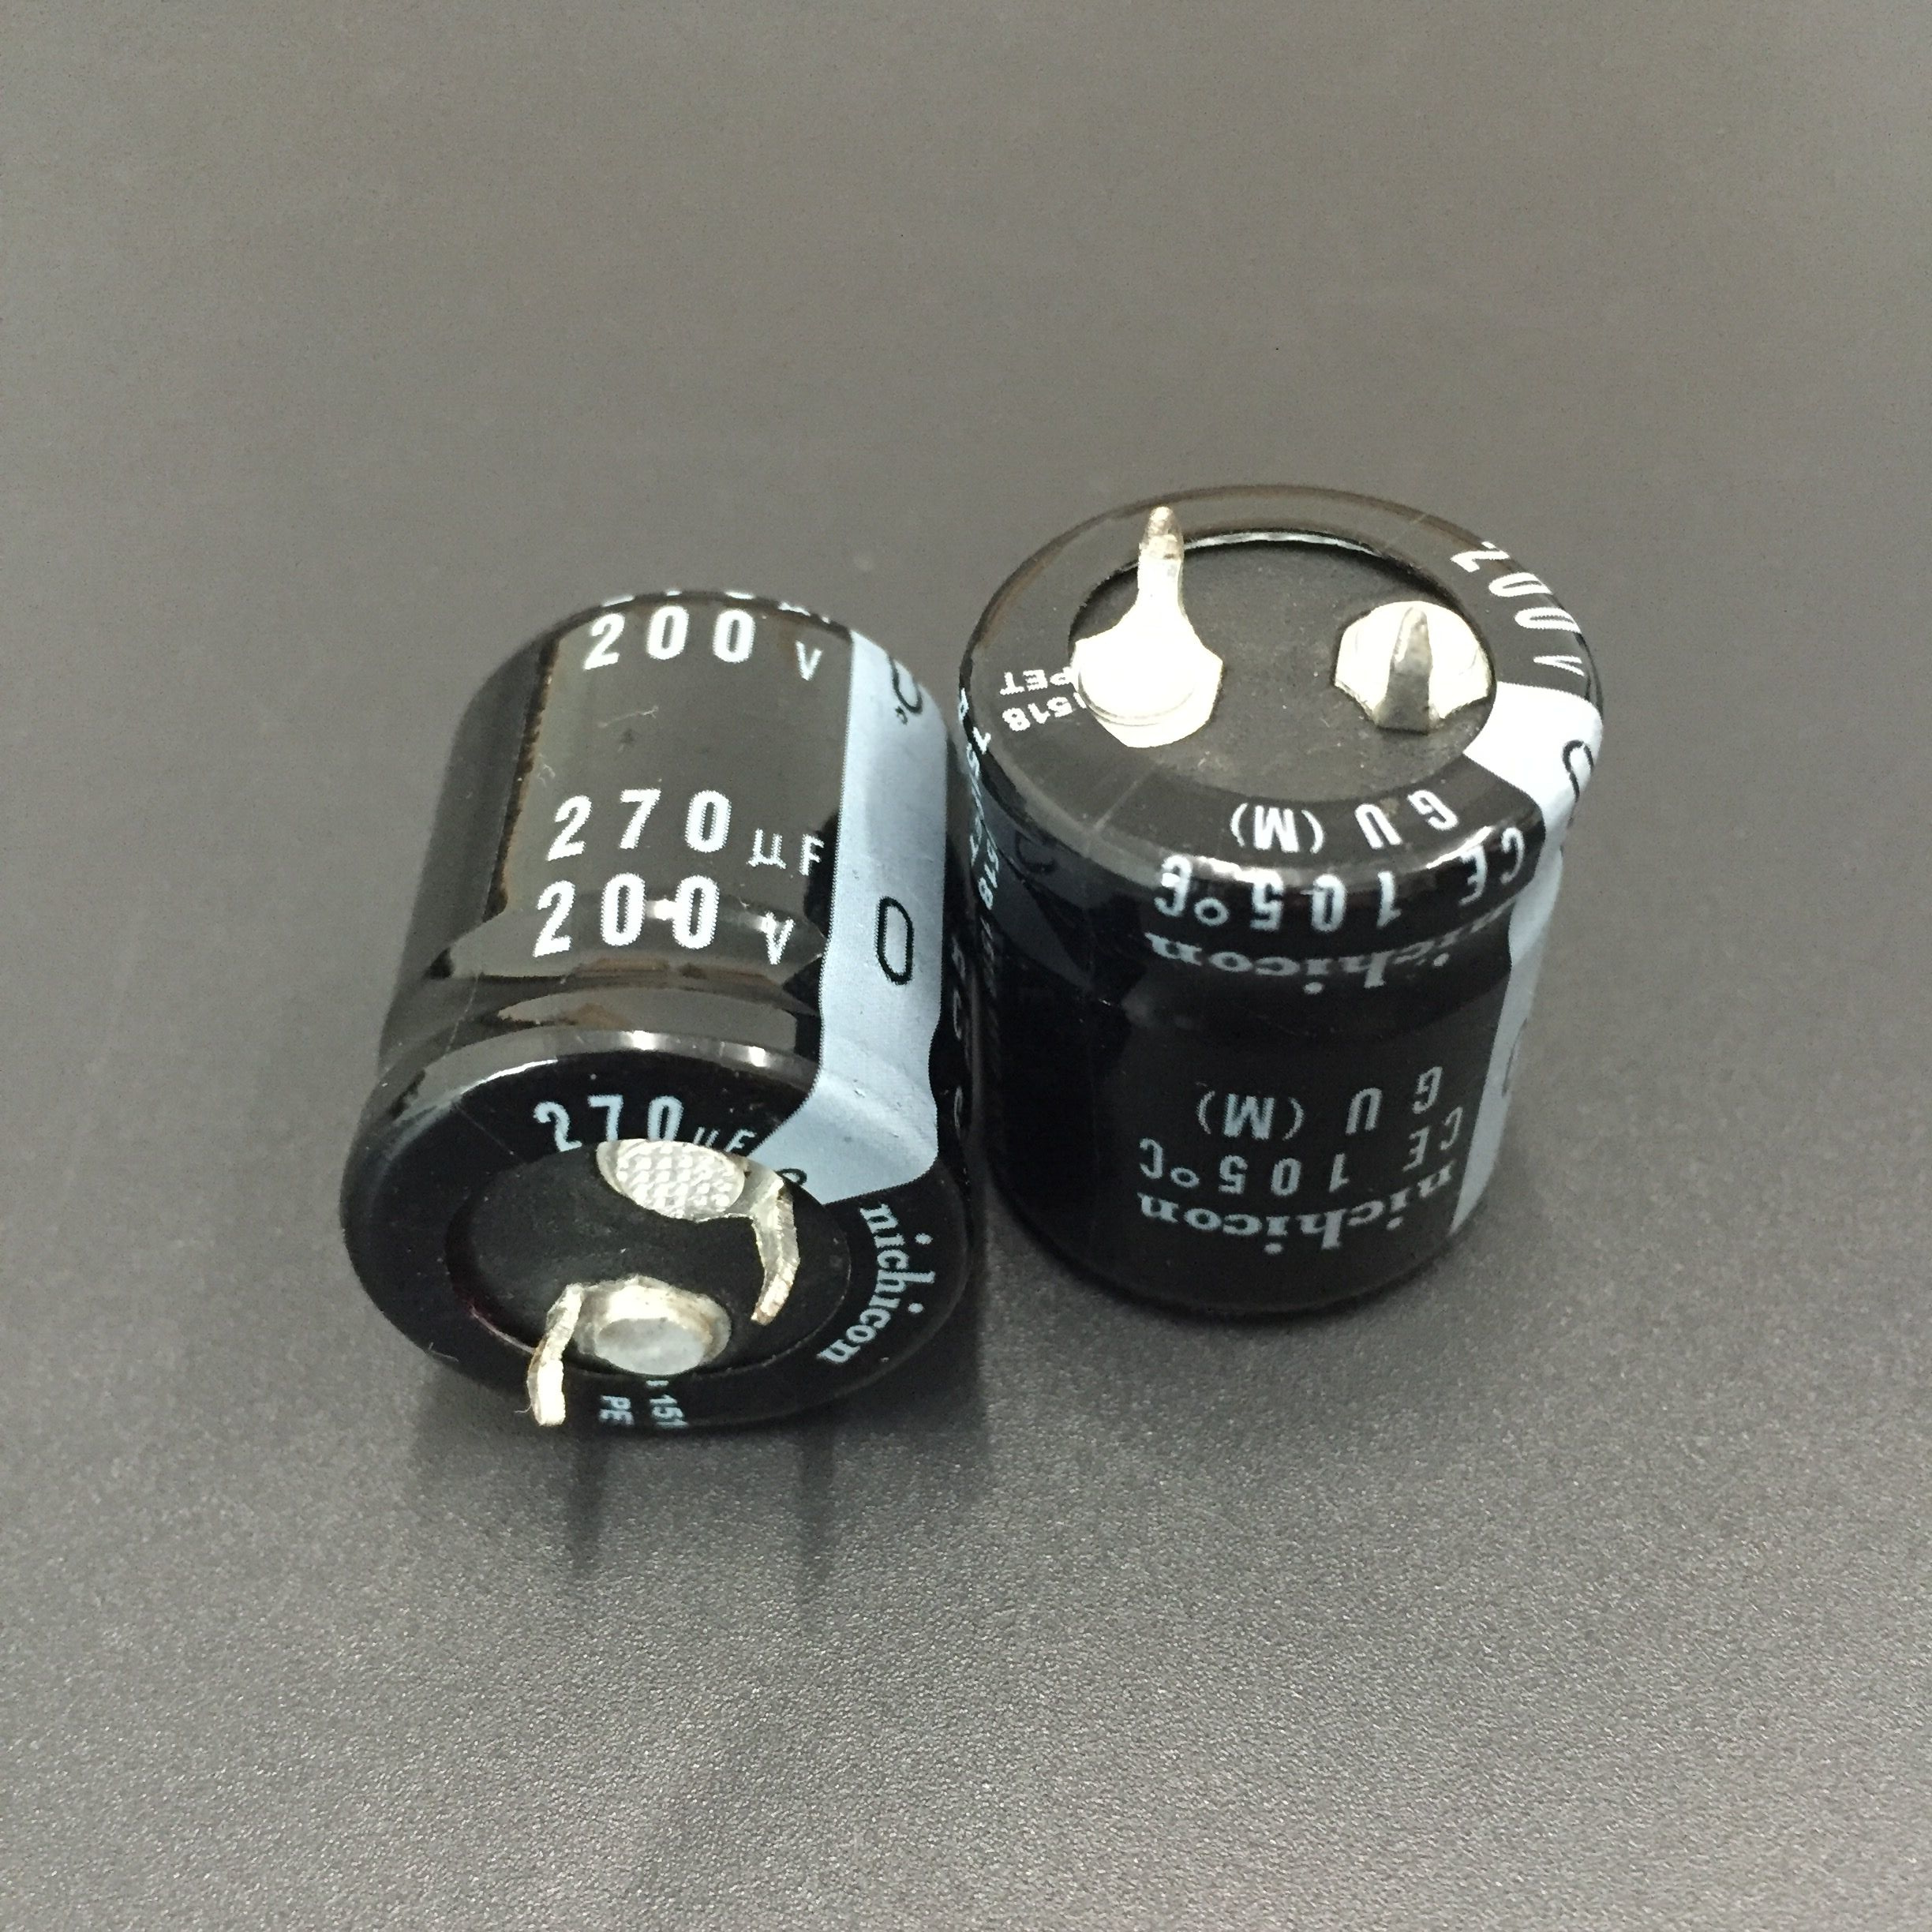 2PCS/10PCS 270uf 200v Nichicon GU 22x25mm 200V270uF Snap-in PSU Capacitor